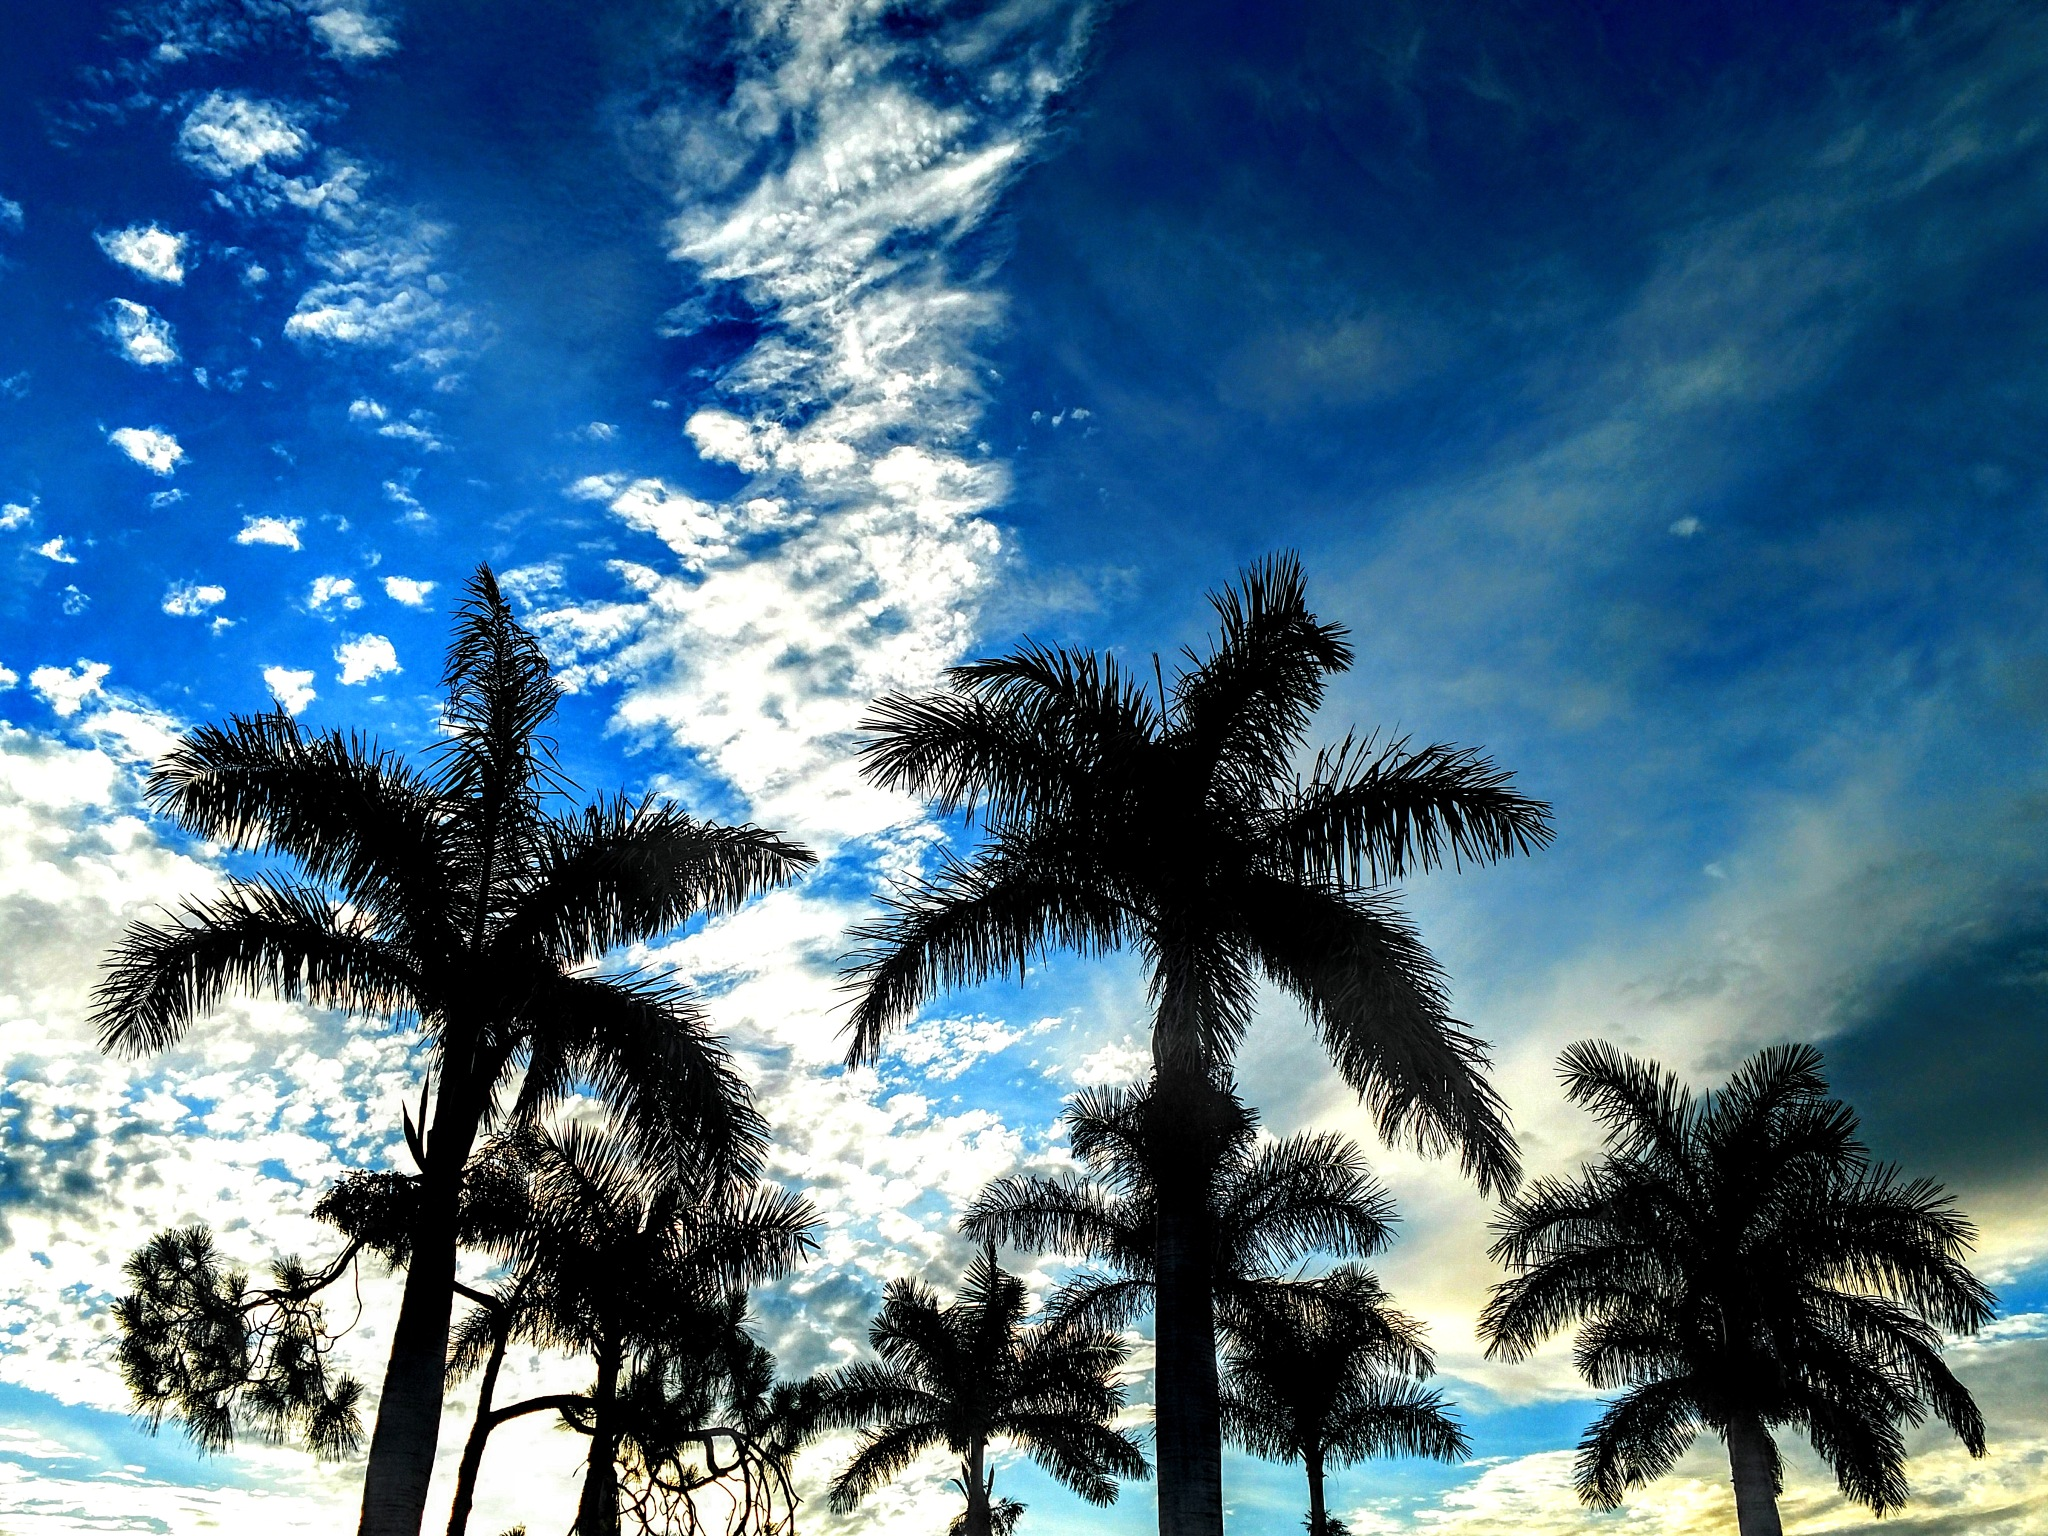 Subtropical Sky by Todd